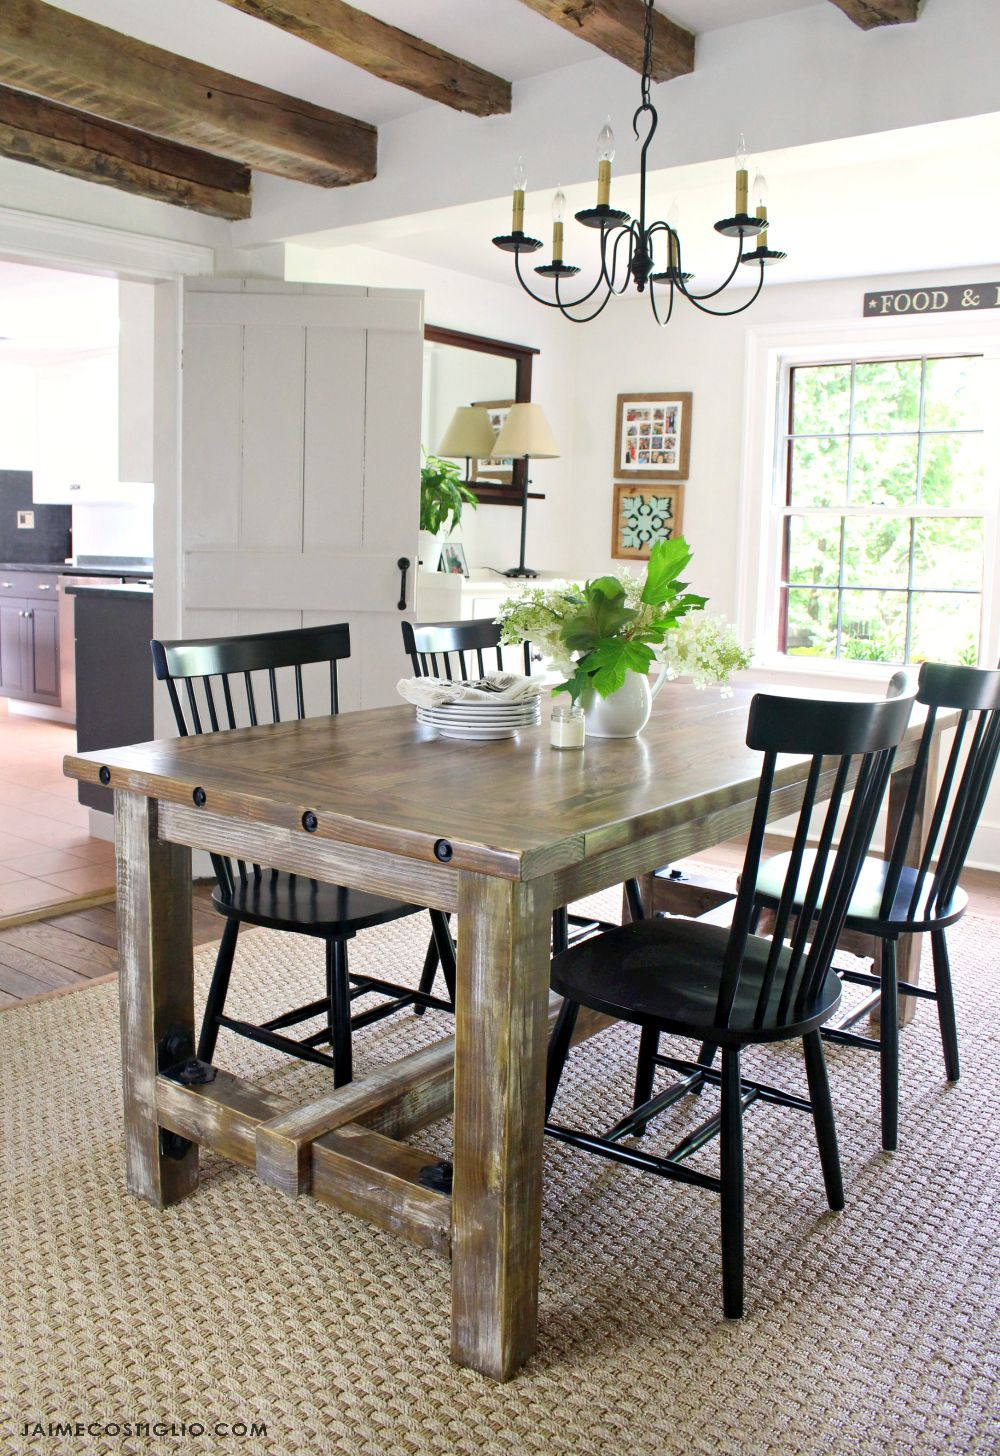 Diy How To Build A Faux Barnwood Dining Table Barnwood Dining